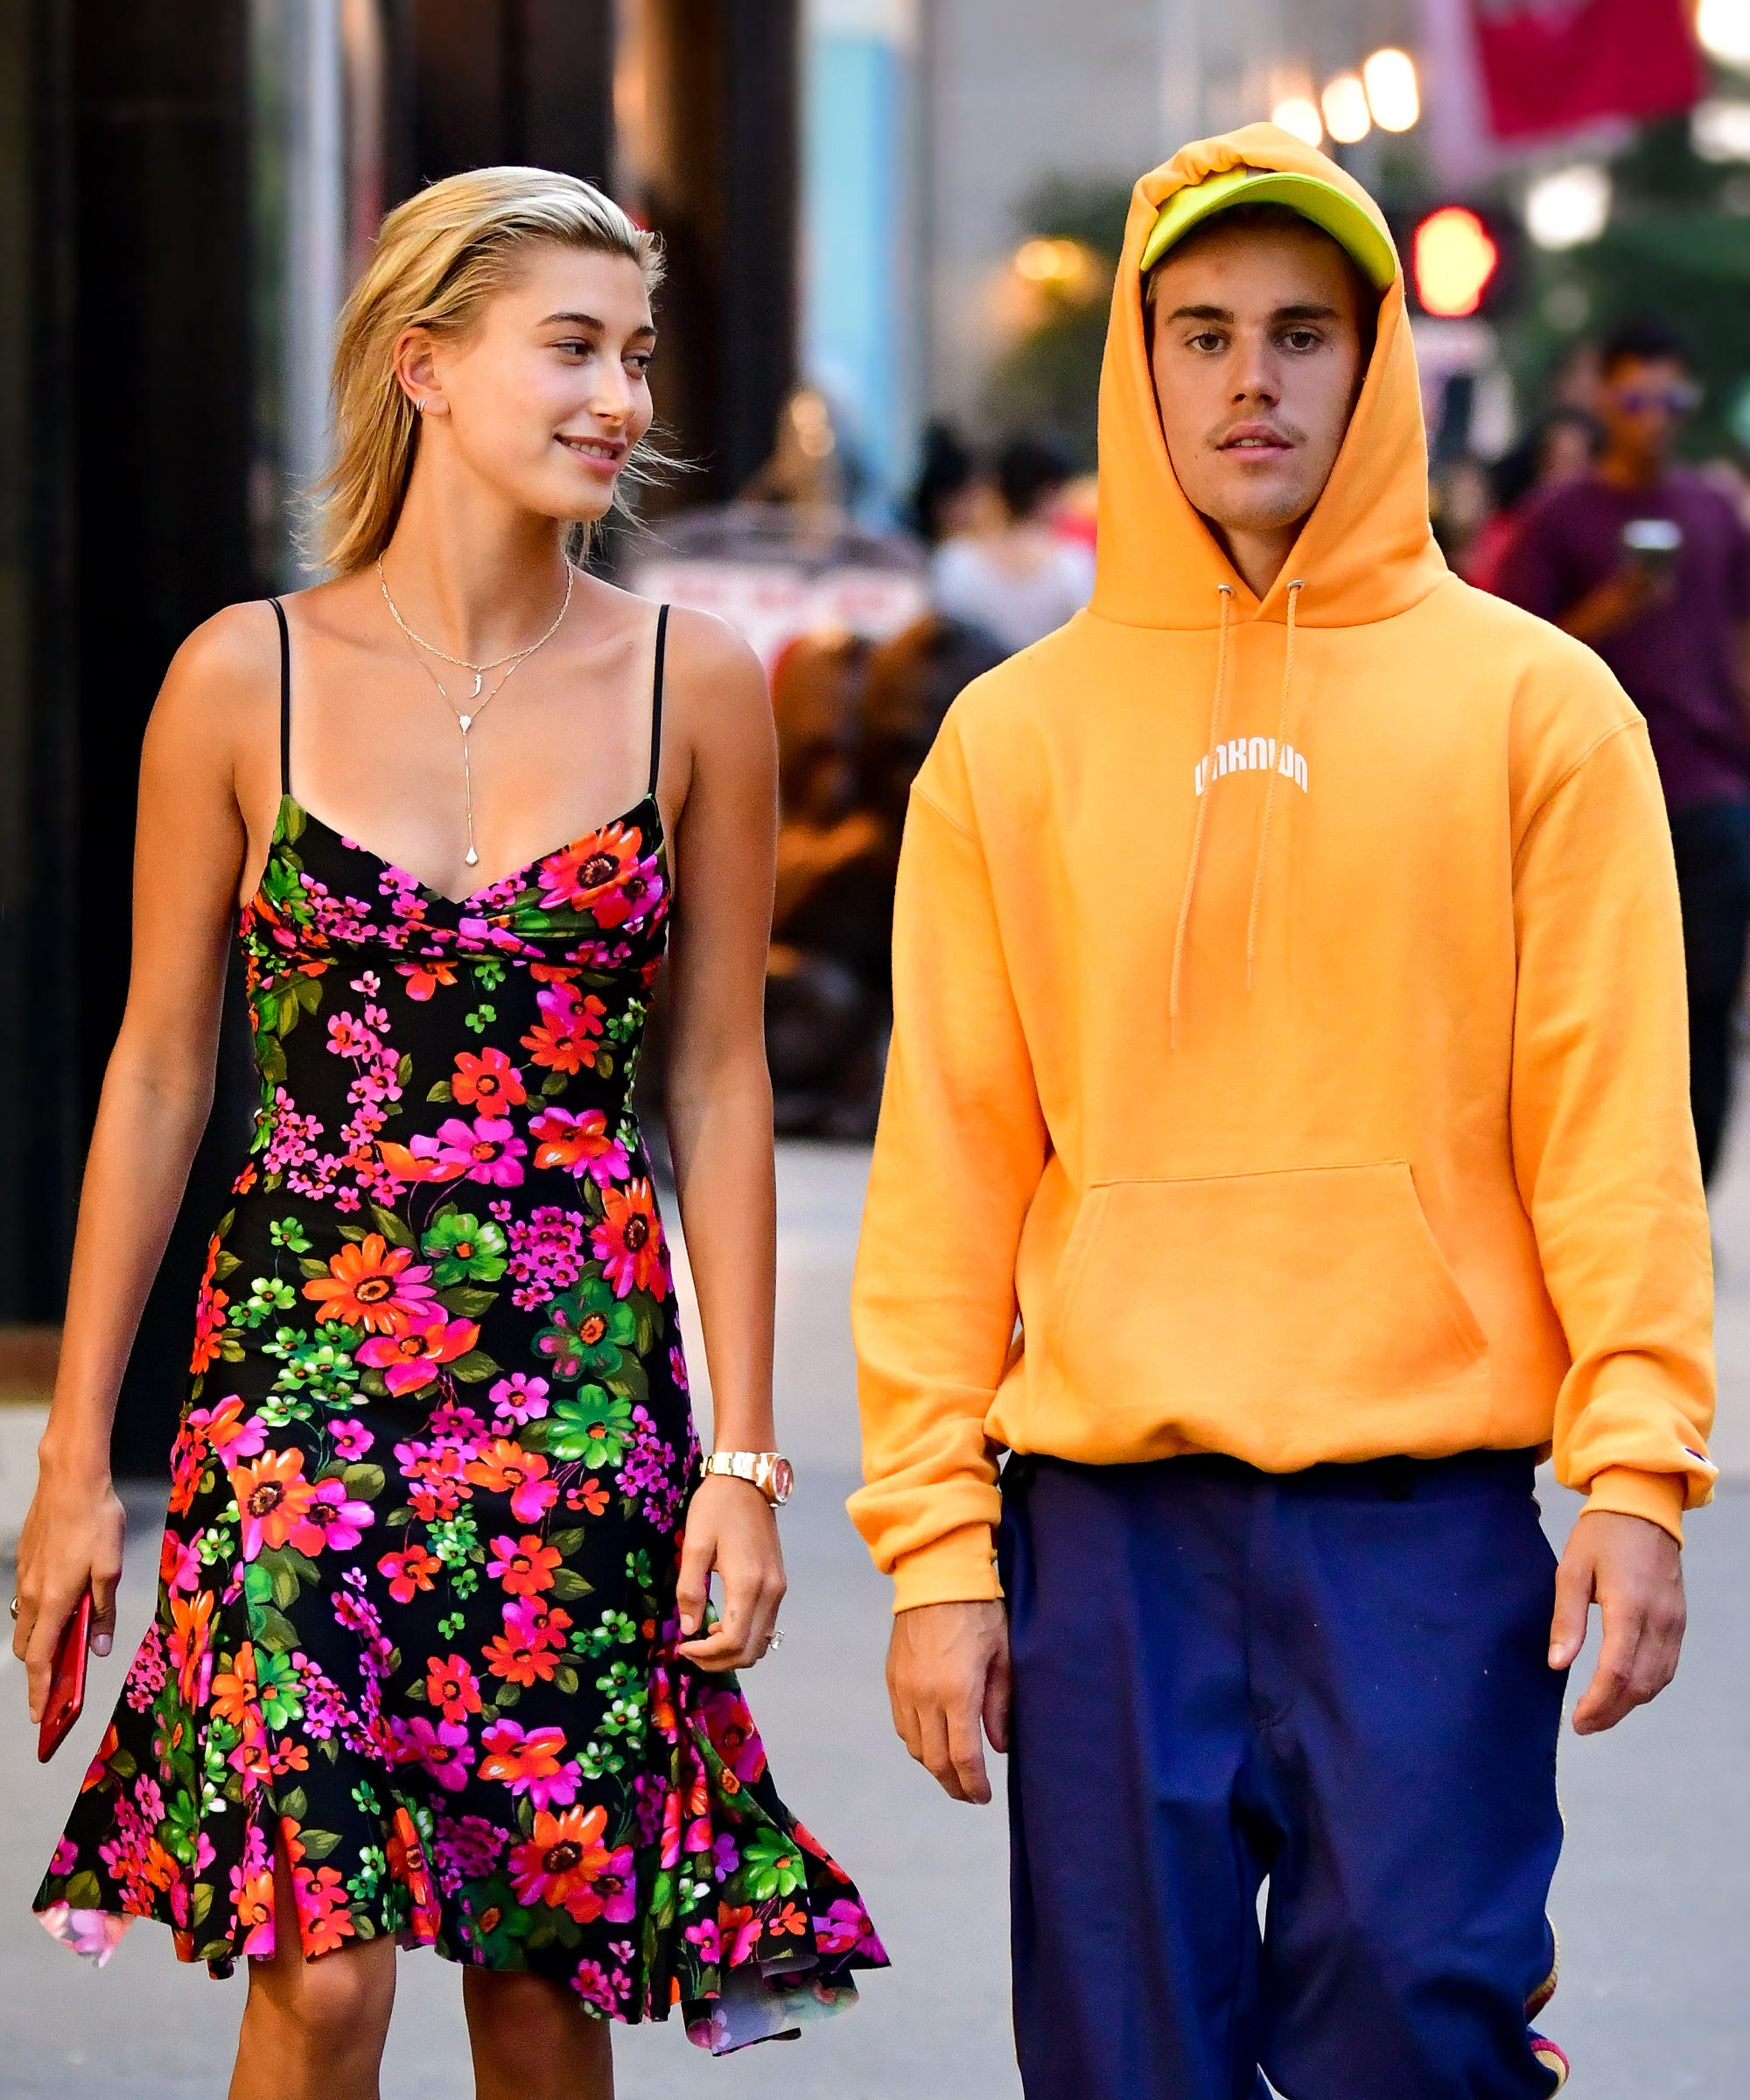 Justin Bieber Wants The World To Know How Thirsty He Is For Hailey Bieber